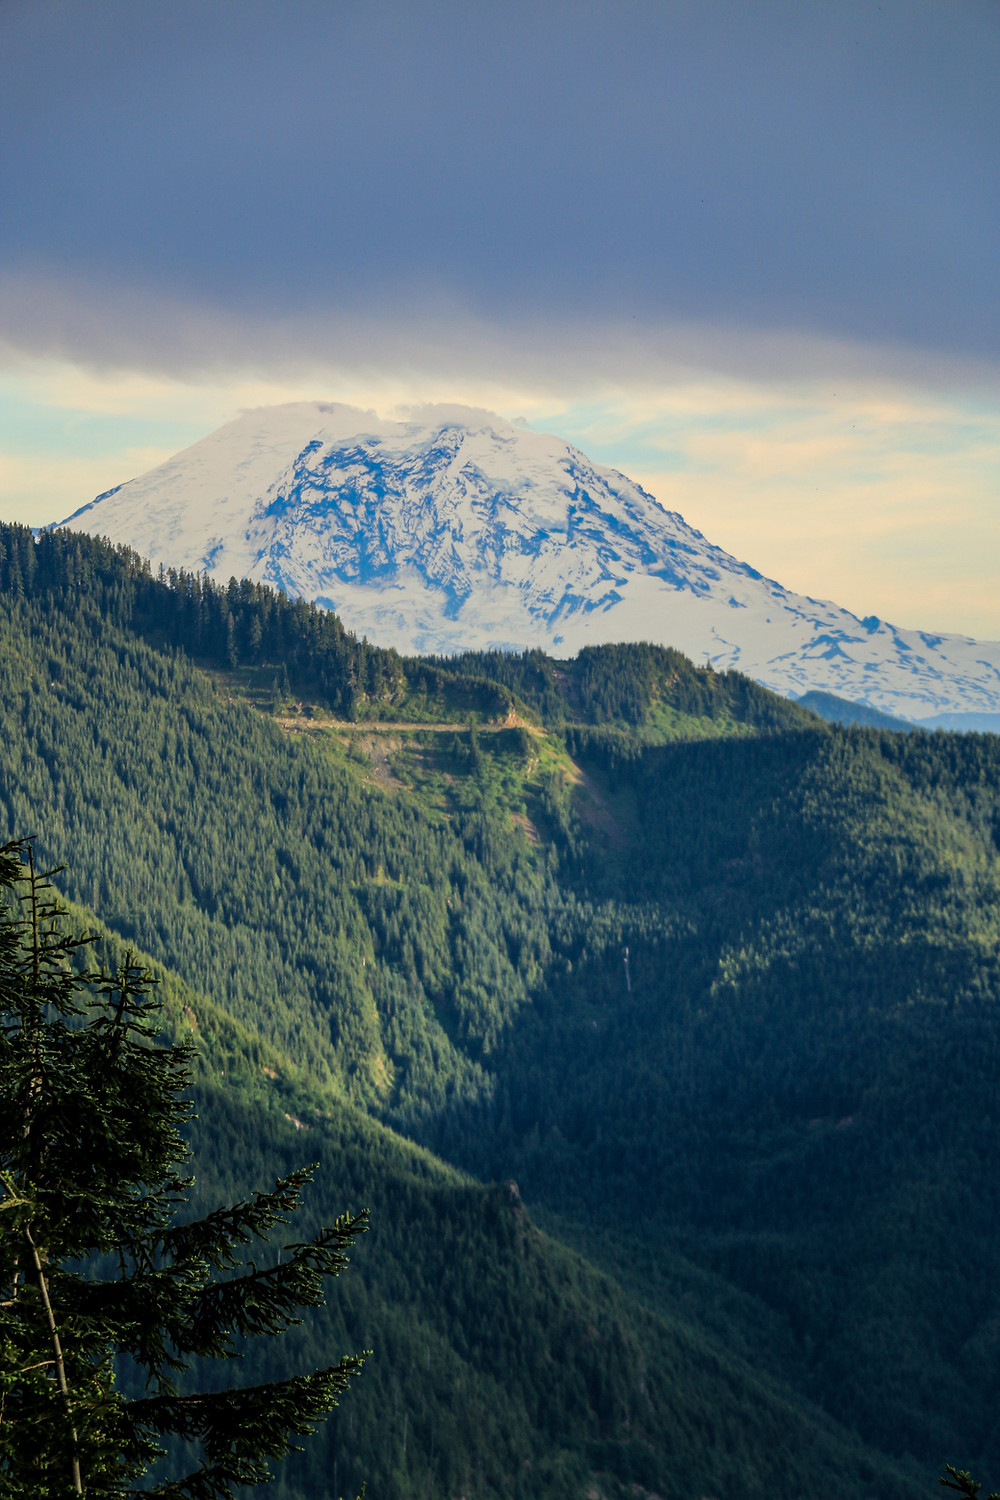 Mount Rainier from the viewpoint of Mailbox Peak